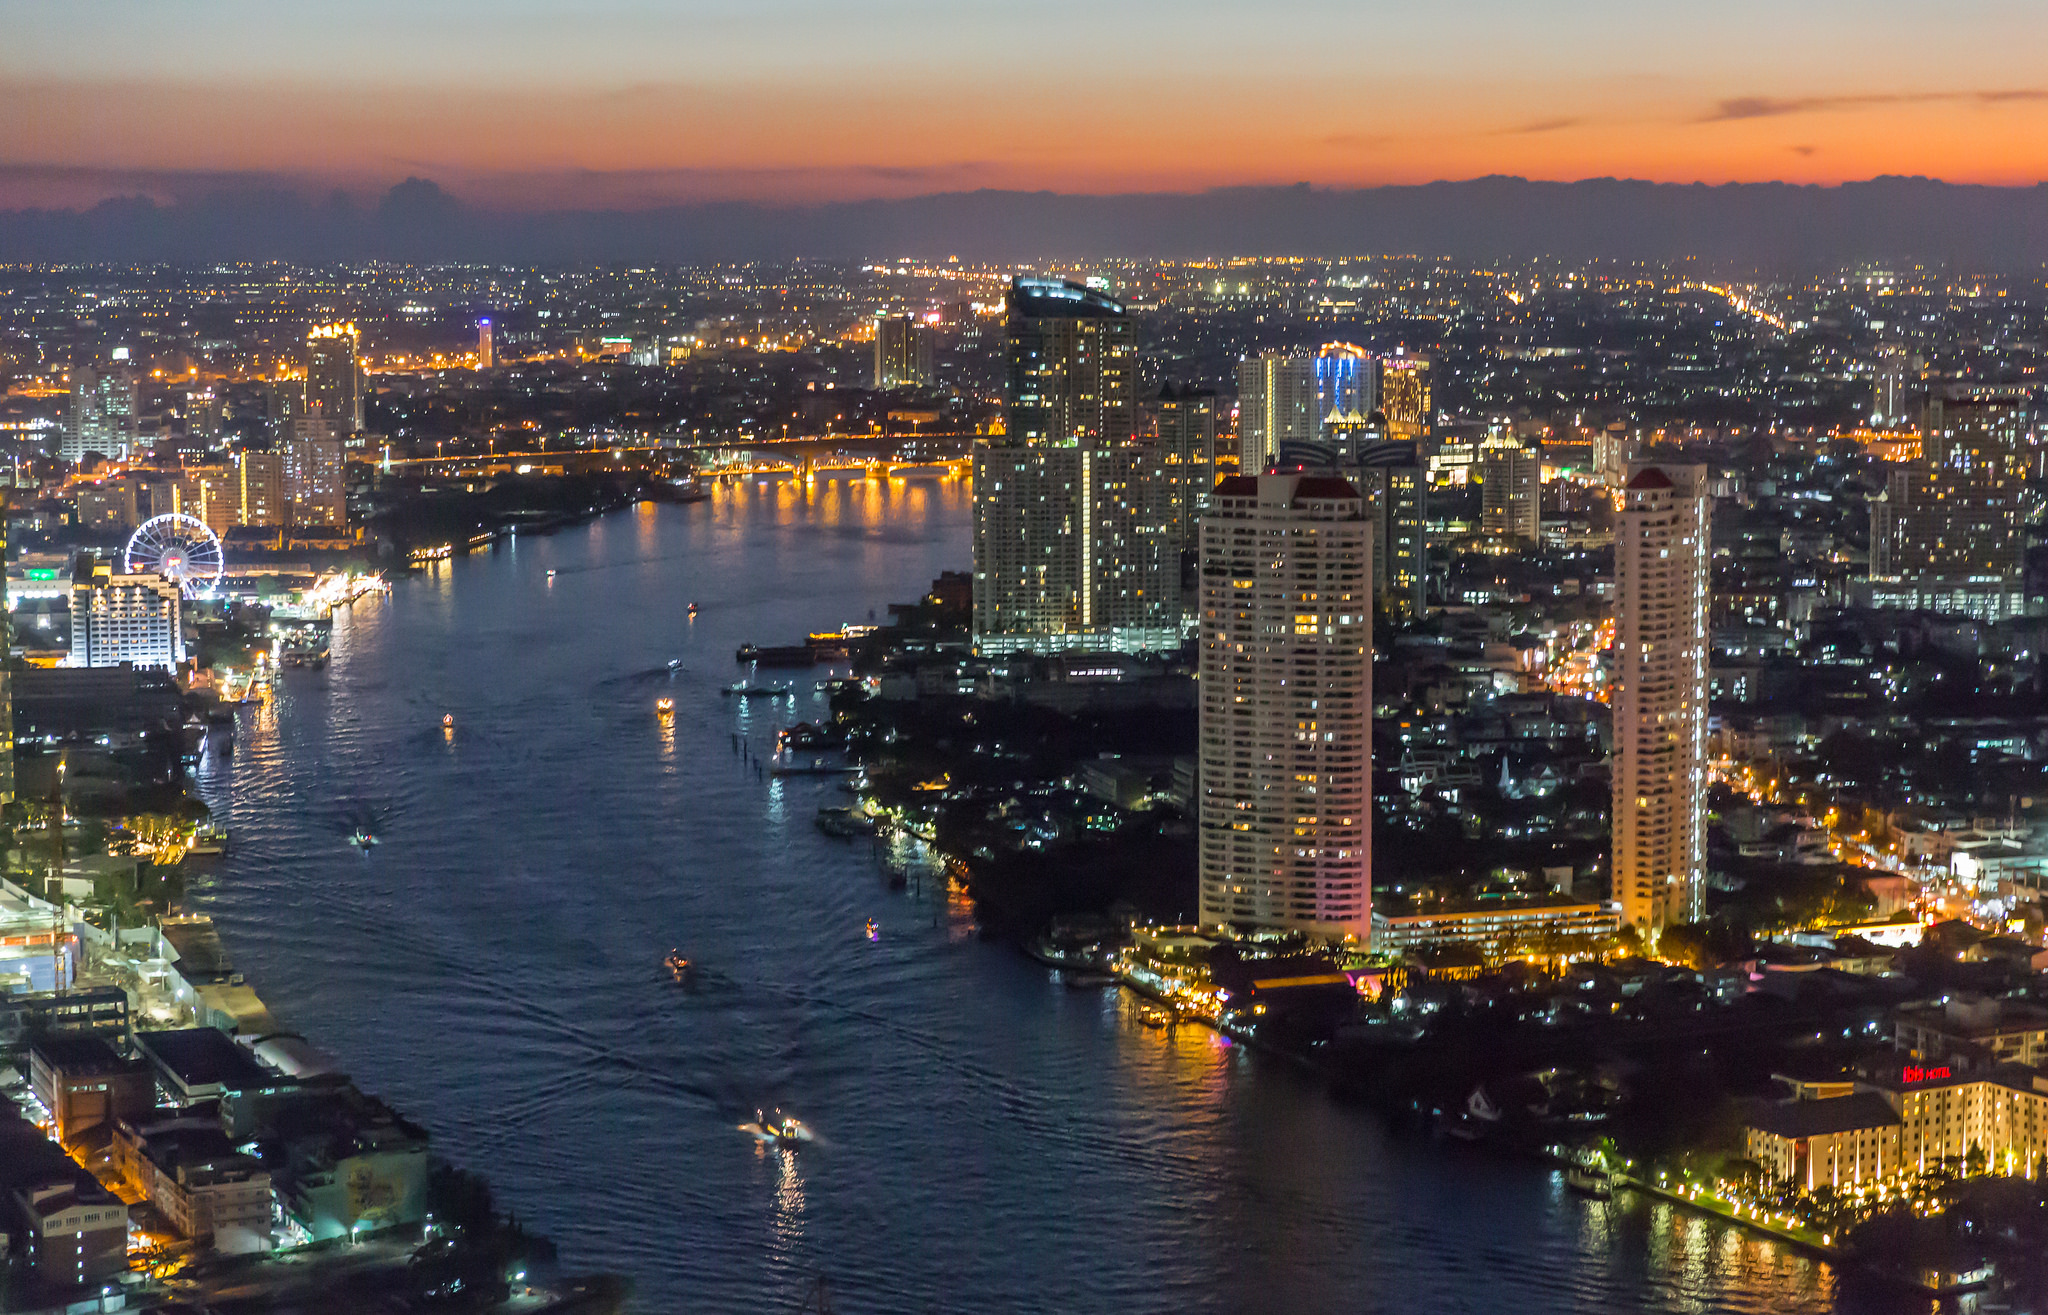 Bangkok Night Skyline and Chao Phraya River view from the State Tower Bangkok, Thailand